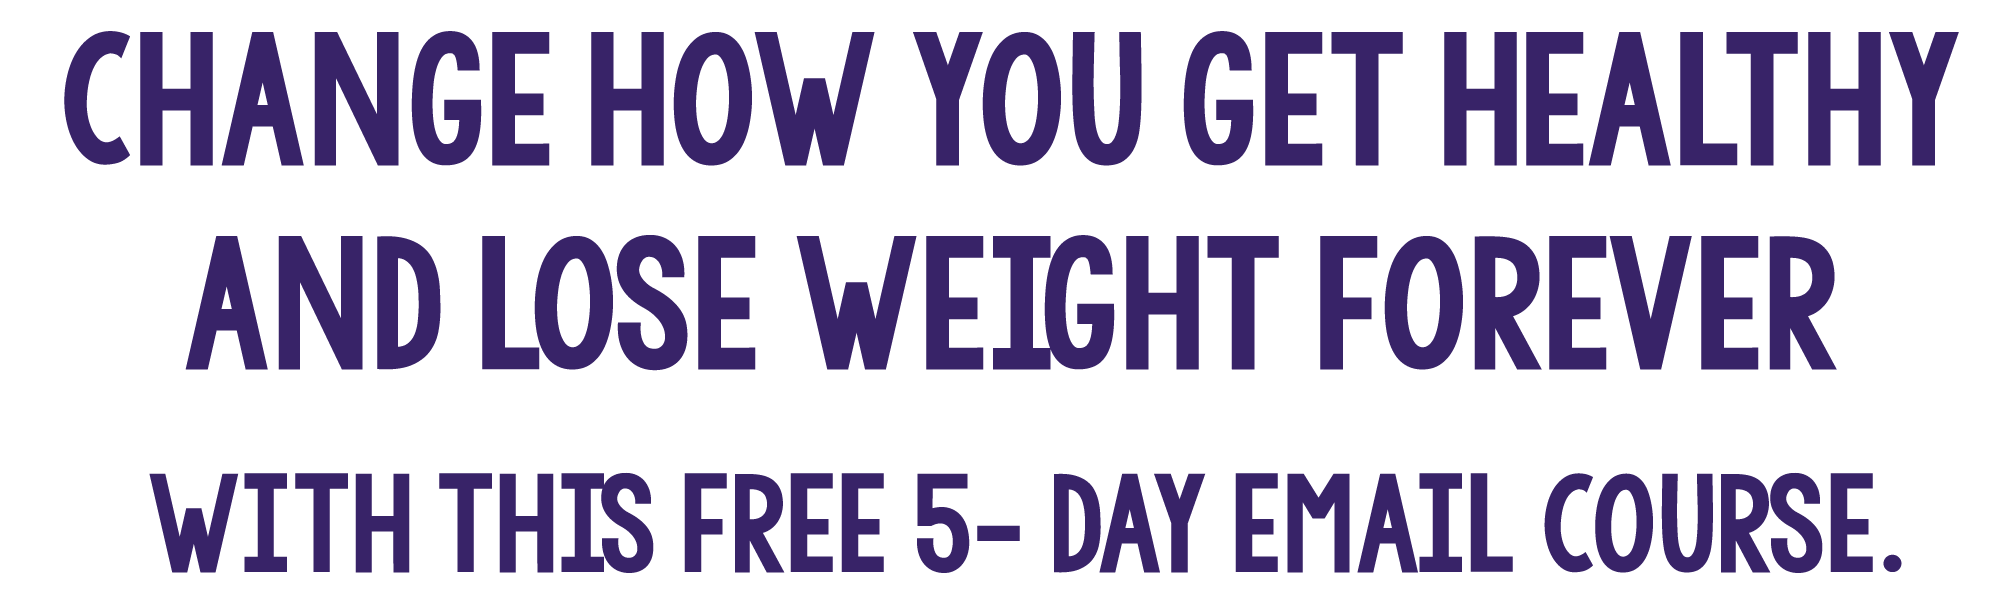 CHANGE HOW YOU GET HEALTHY AND LOSE WEIGHT FOREVER WITH THIS 5 DAY EMAIL COURSE